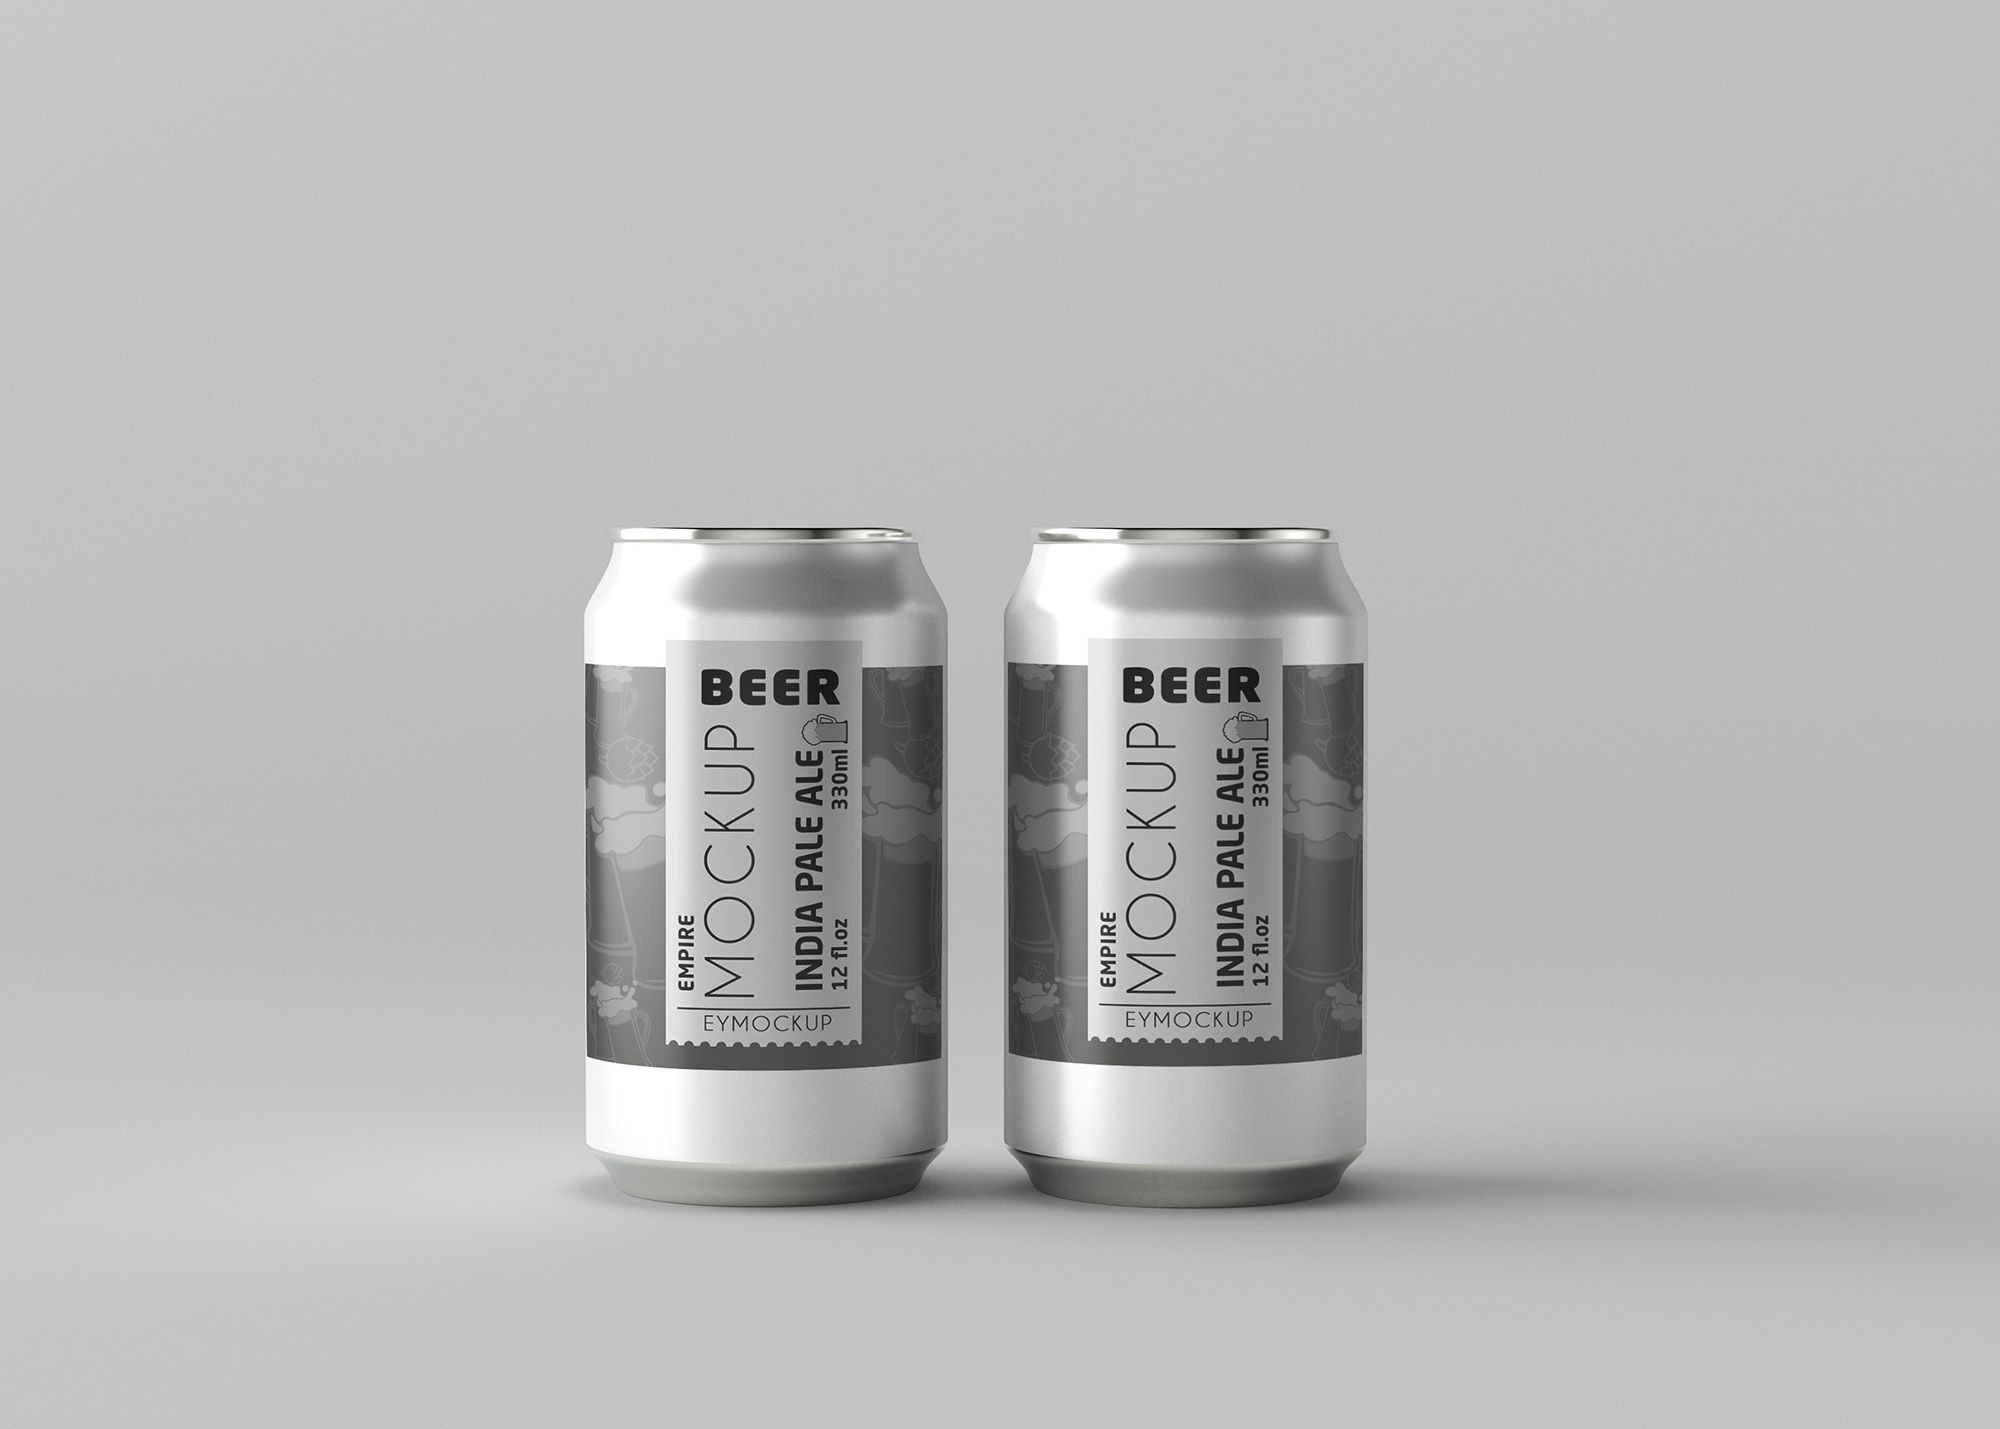 Round Small Beer Can Label Mockup For Presentation Mockup Free Psd Beer Can Mockup